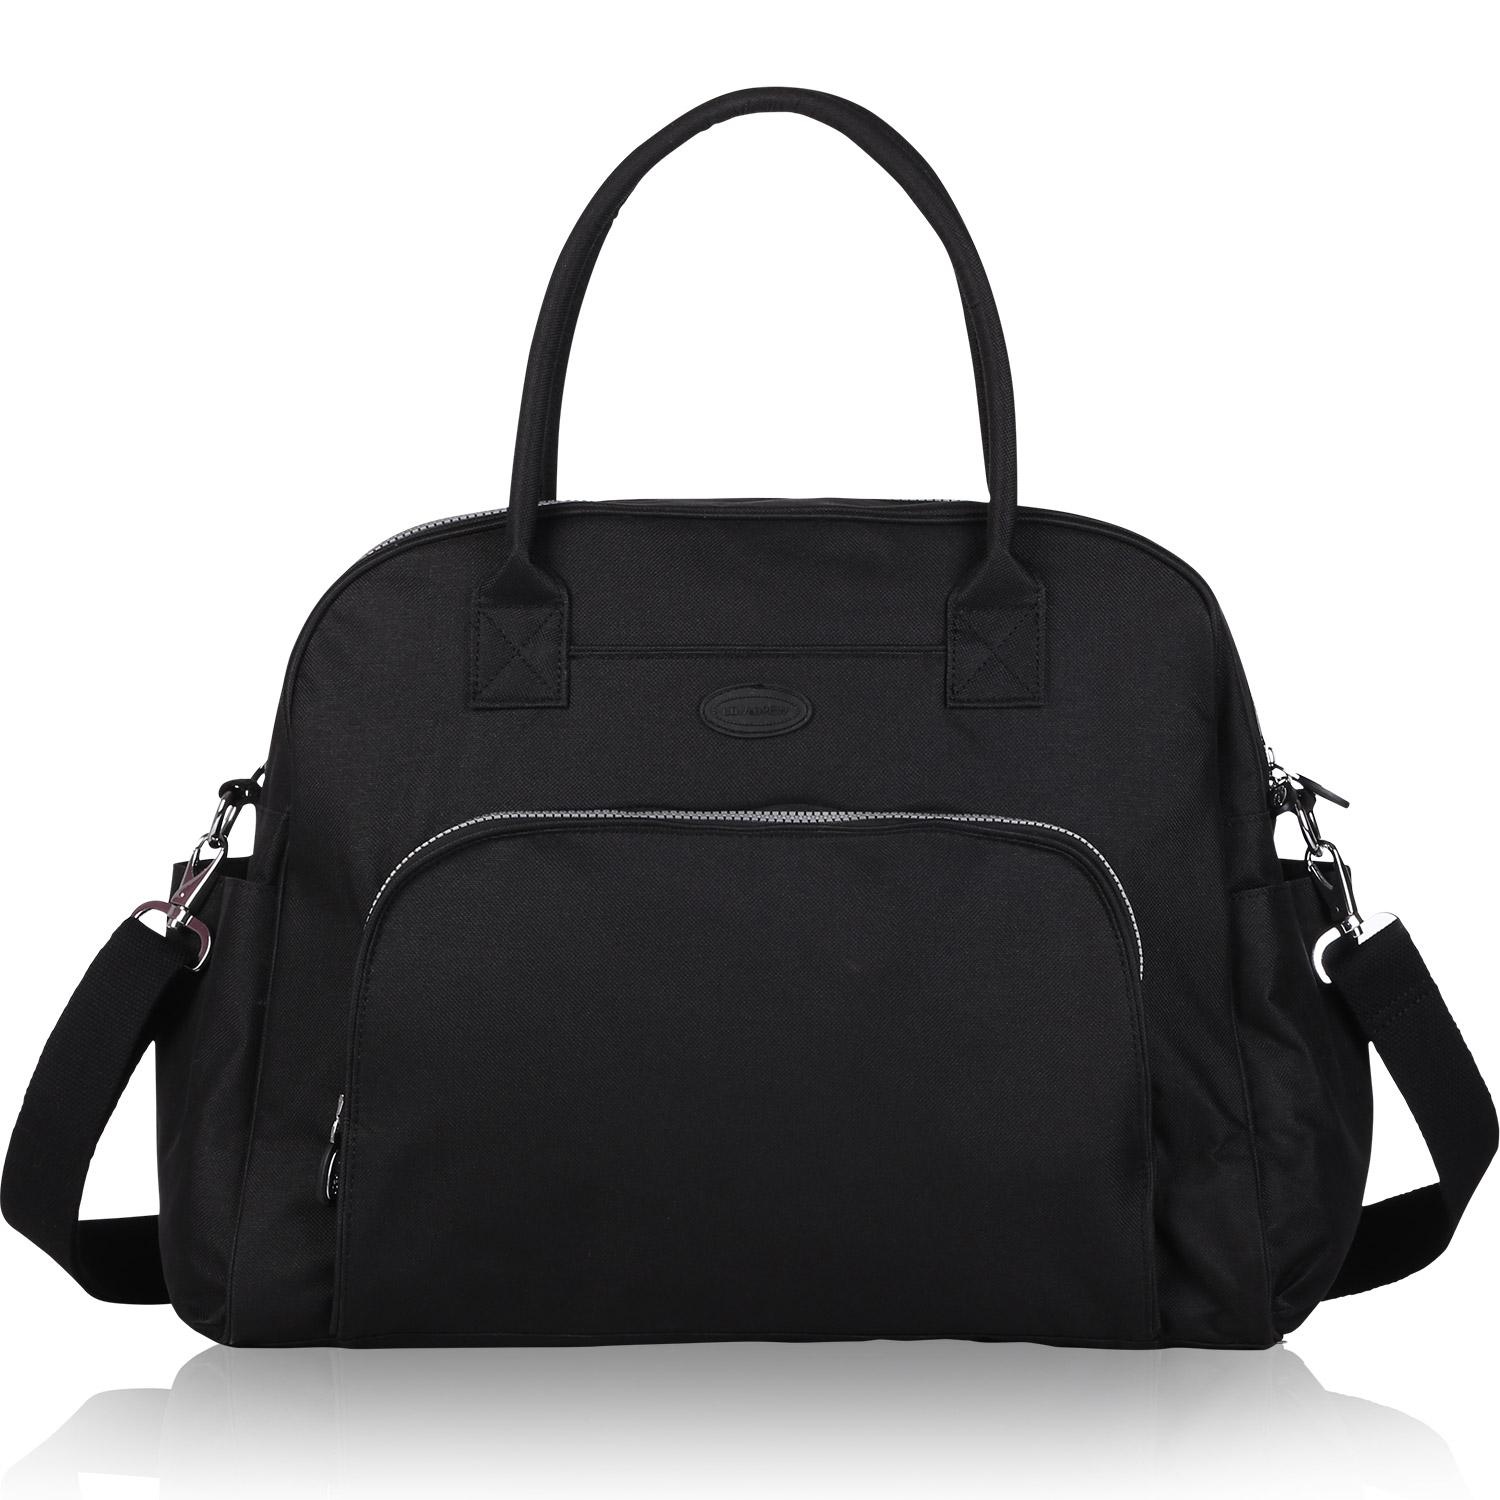 30cb9175d8ccdc Lily & Drew Carry On Weekender Travel Bag for 15.6 Inch Laptop Computers